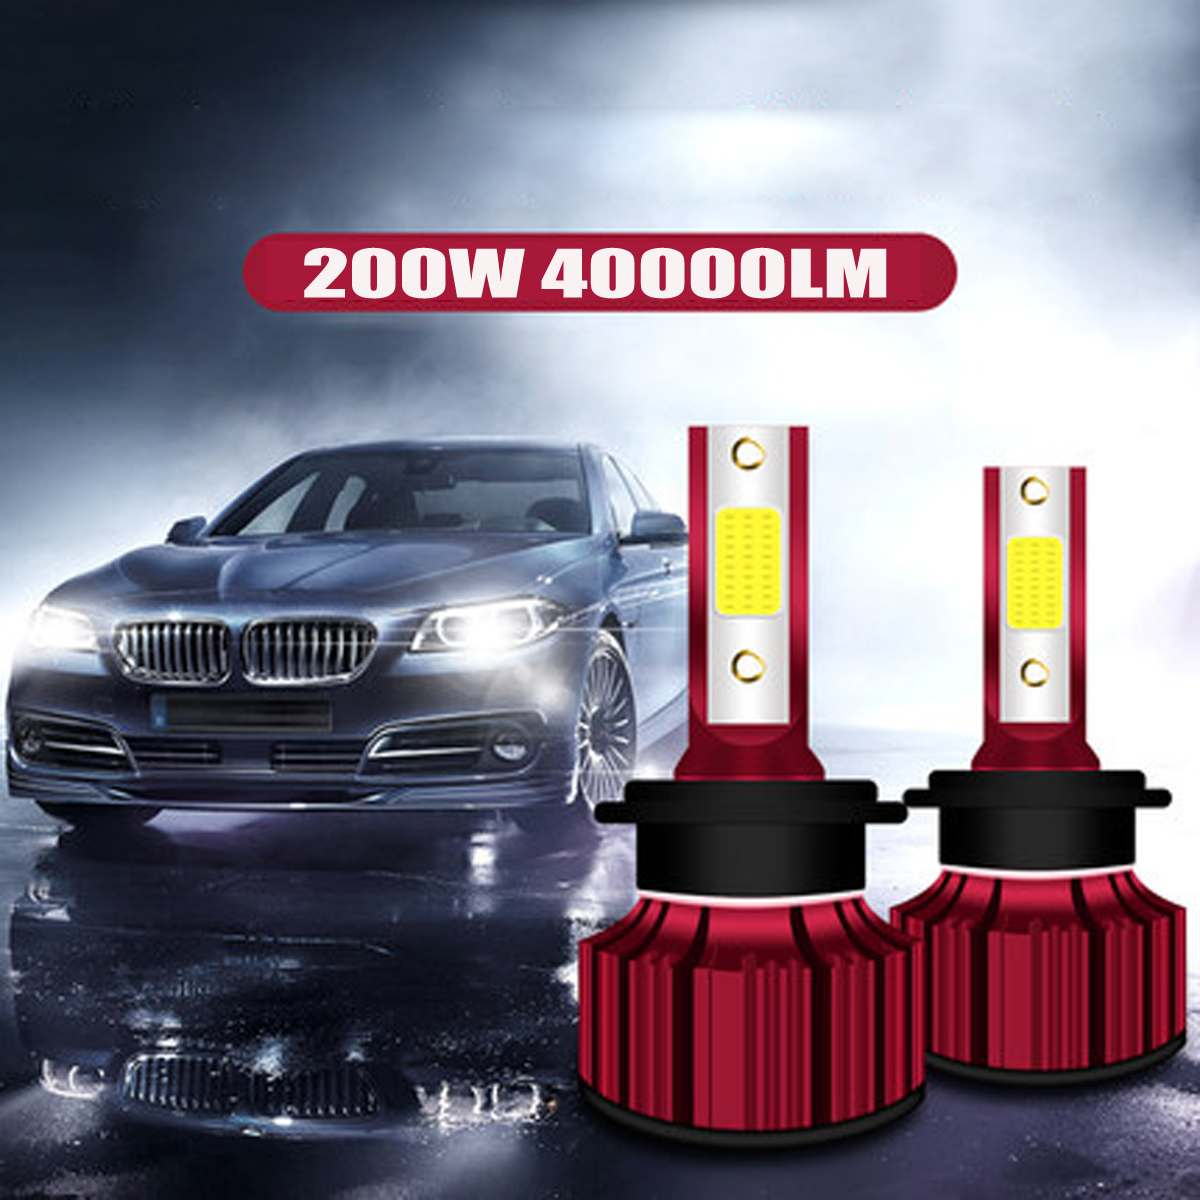 2x <font><b>200W</b></font> 40000LM Car <font><b>LED</b></font> <font><b>Headlight</b></font> Bubls Mini <font><b>Headlight</b></font> Kit for High Power <font><b>Bulb</b></font> fog Light 6000K White H7 H8 H9 H11 <font><b>H4</b></font> 9003 HB4 image